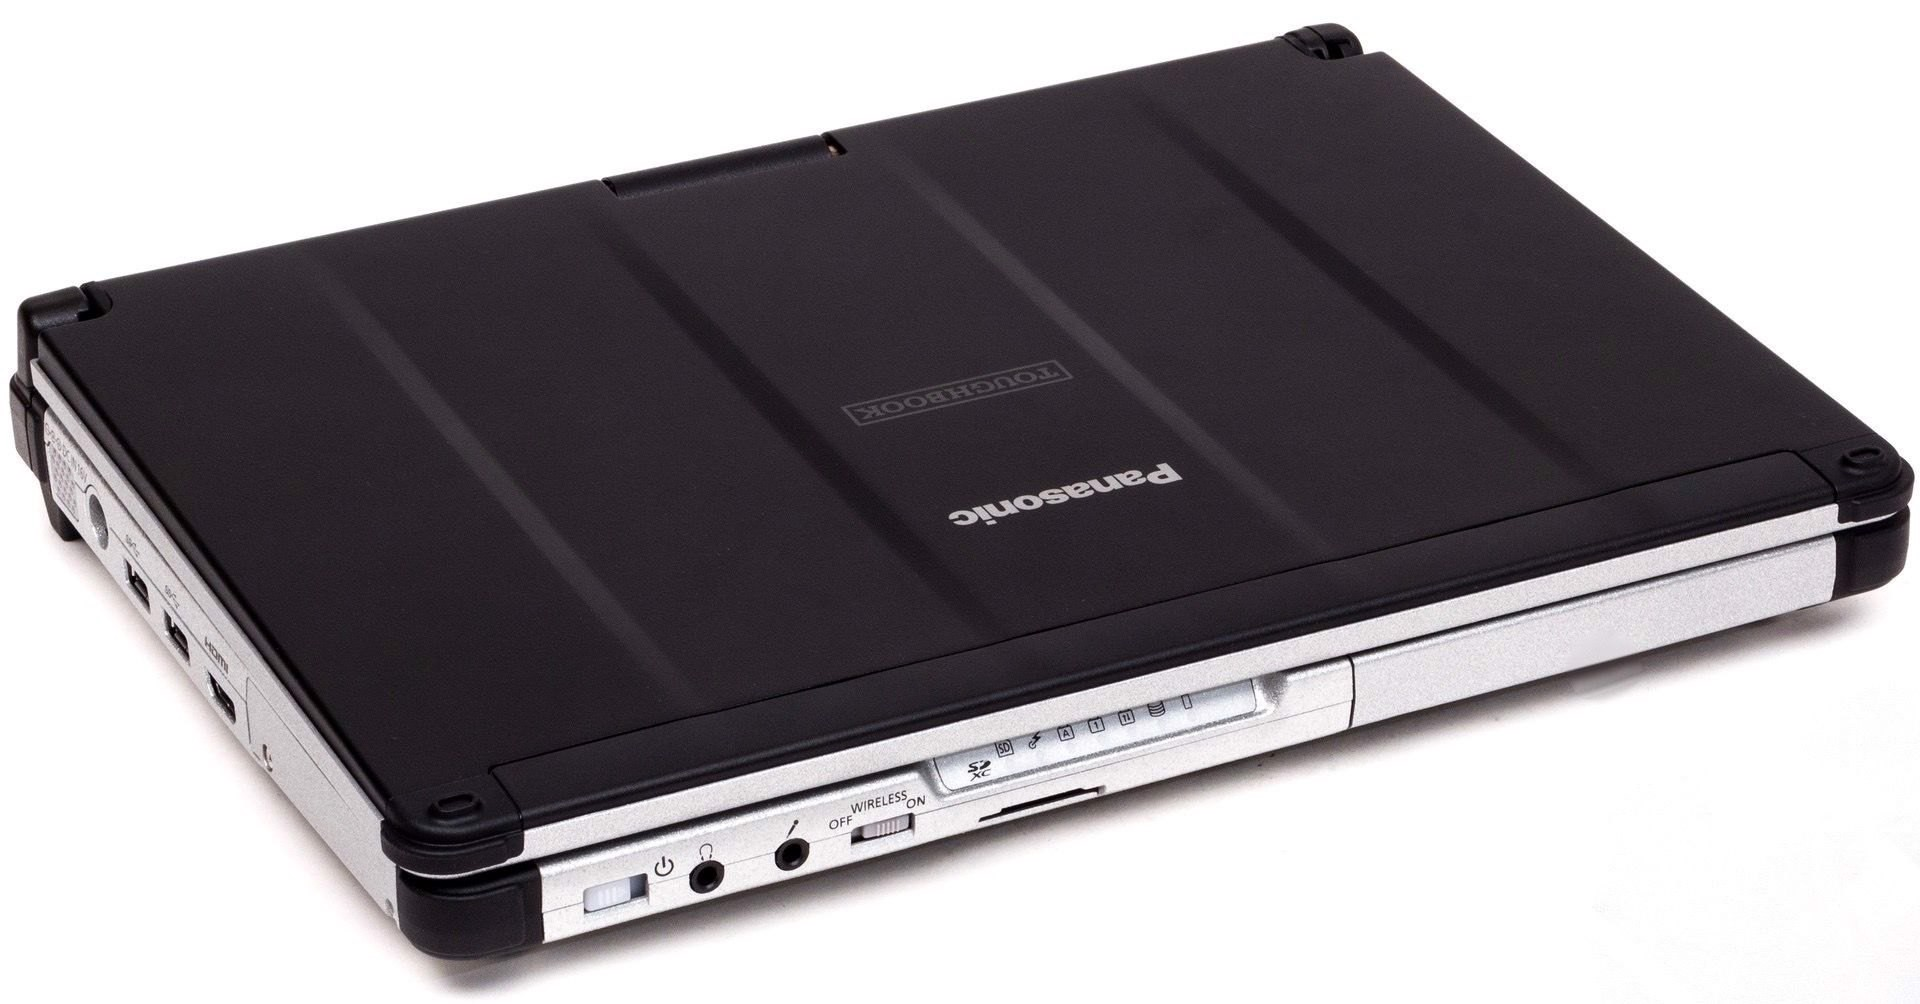 Panasonic Toughbook CF-C2 MK2 Core i5-4300U